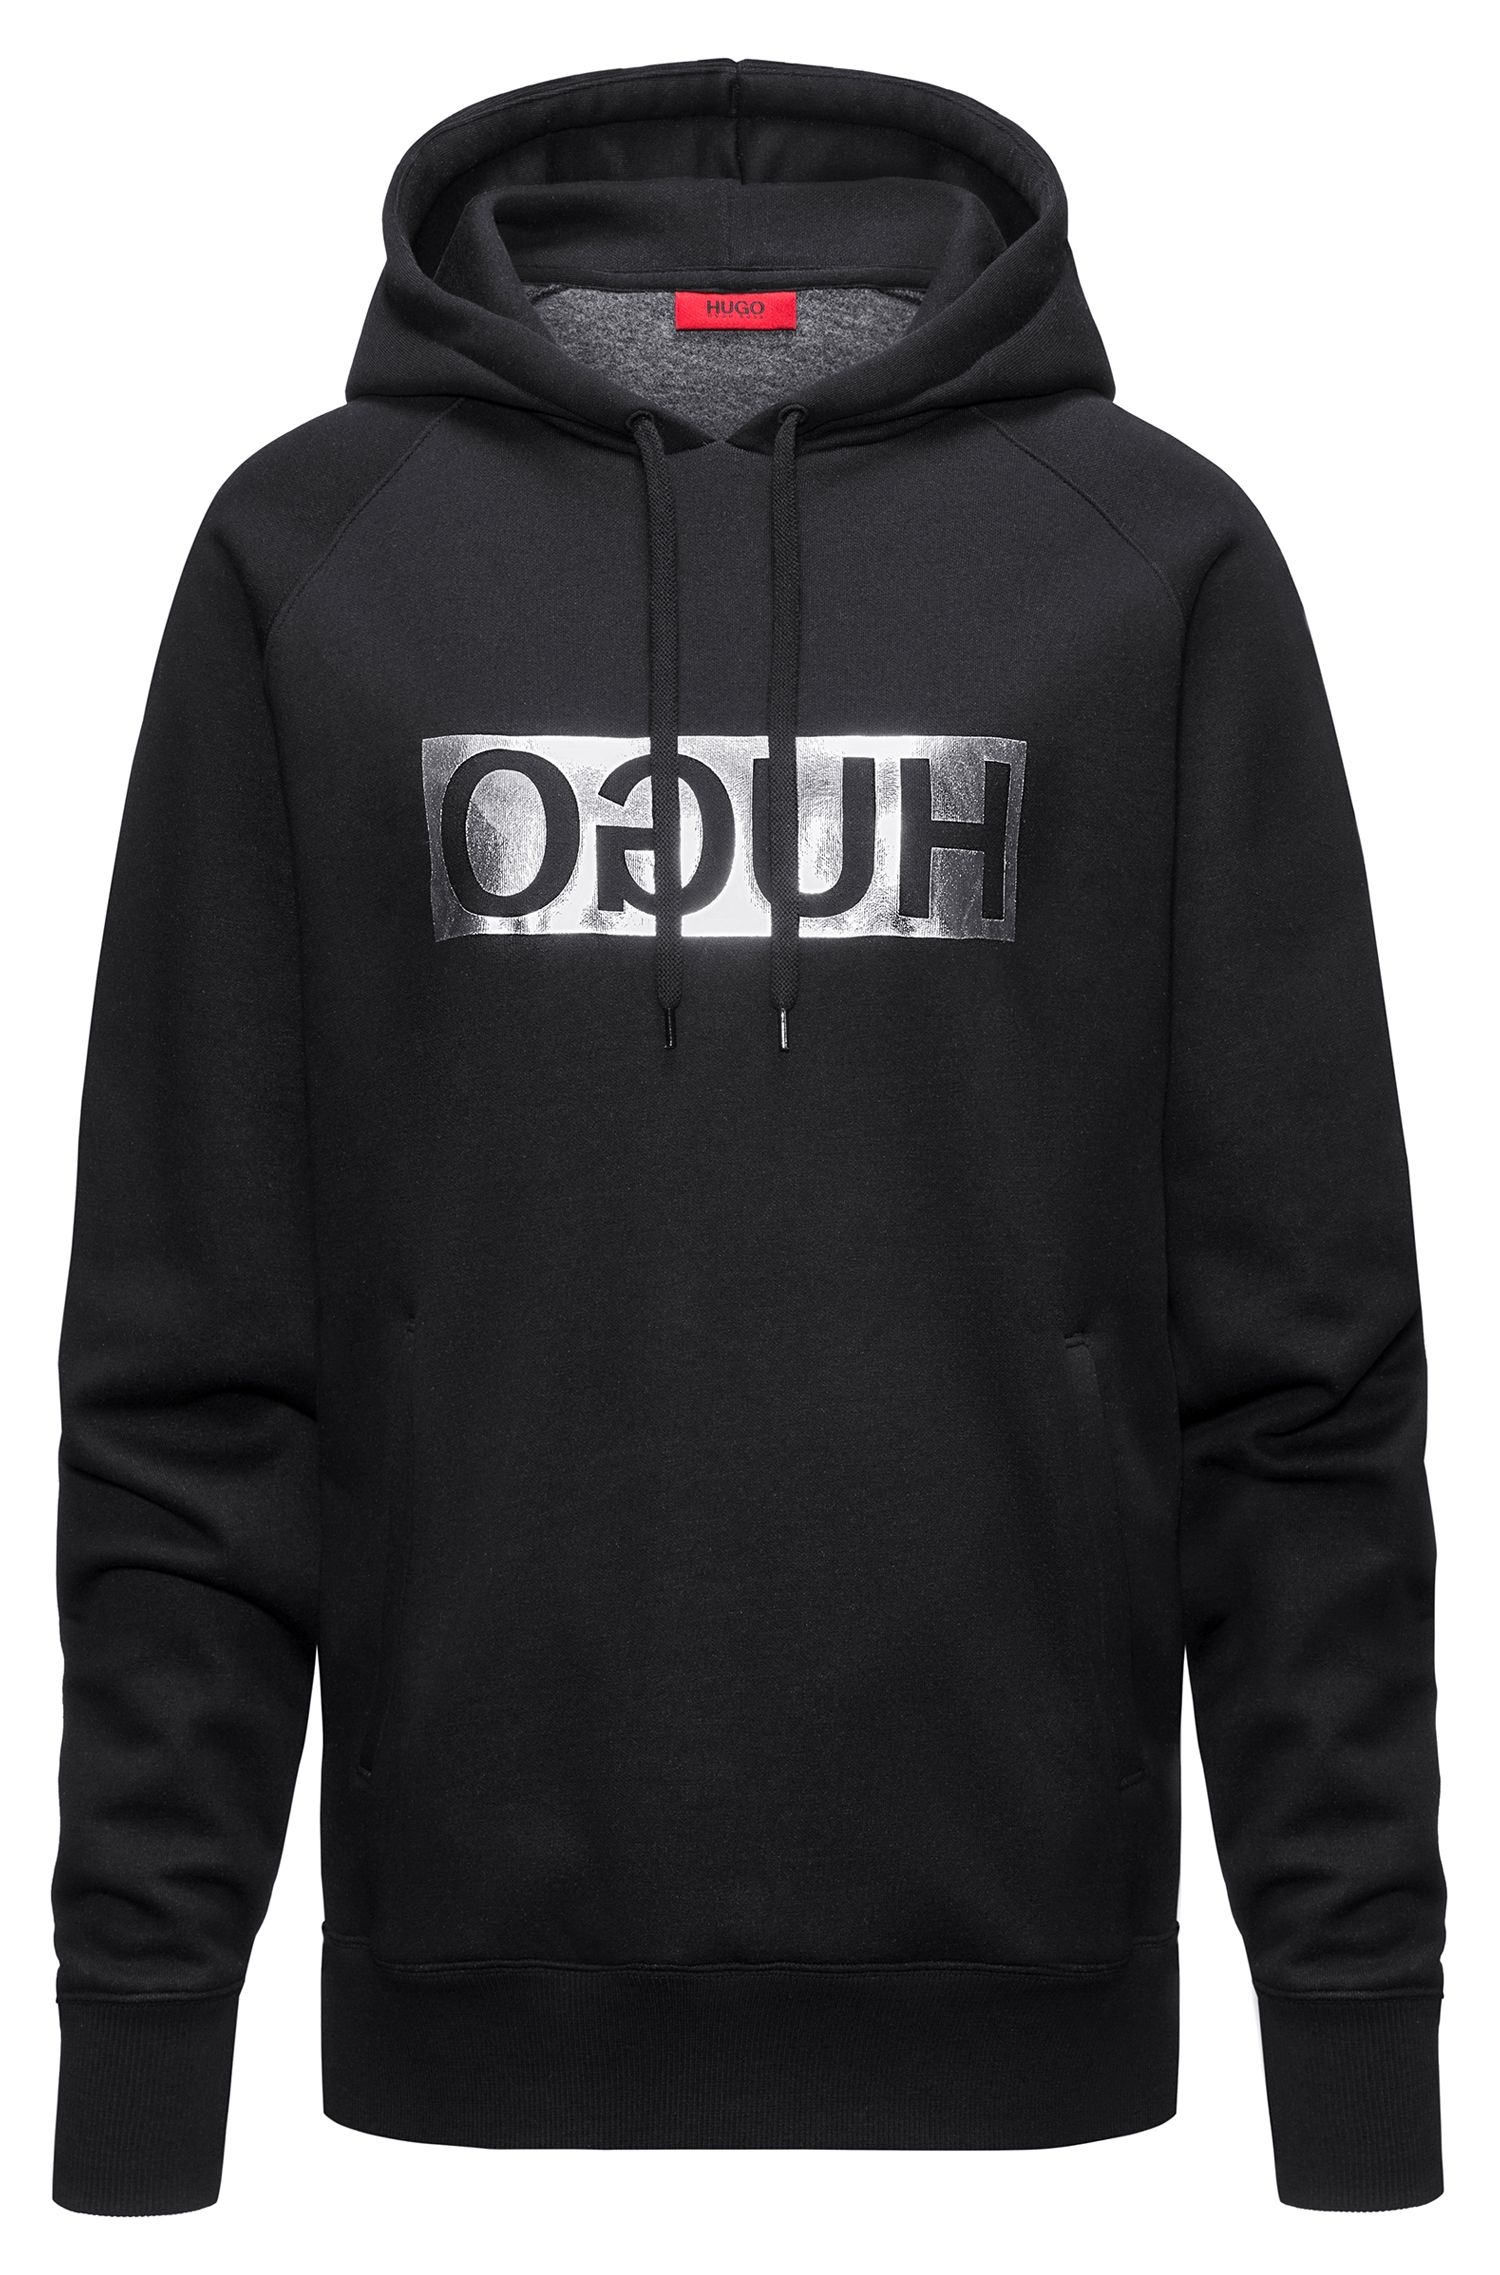 Hooded sweatshirt with metallic reversed logo